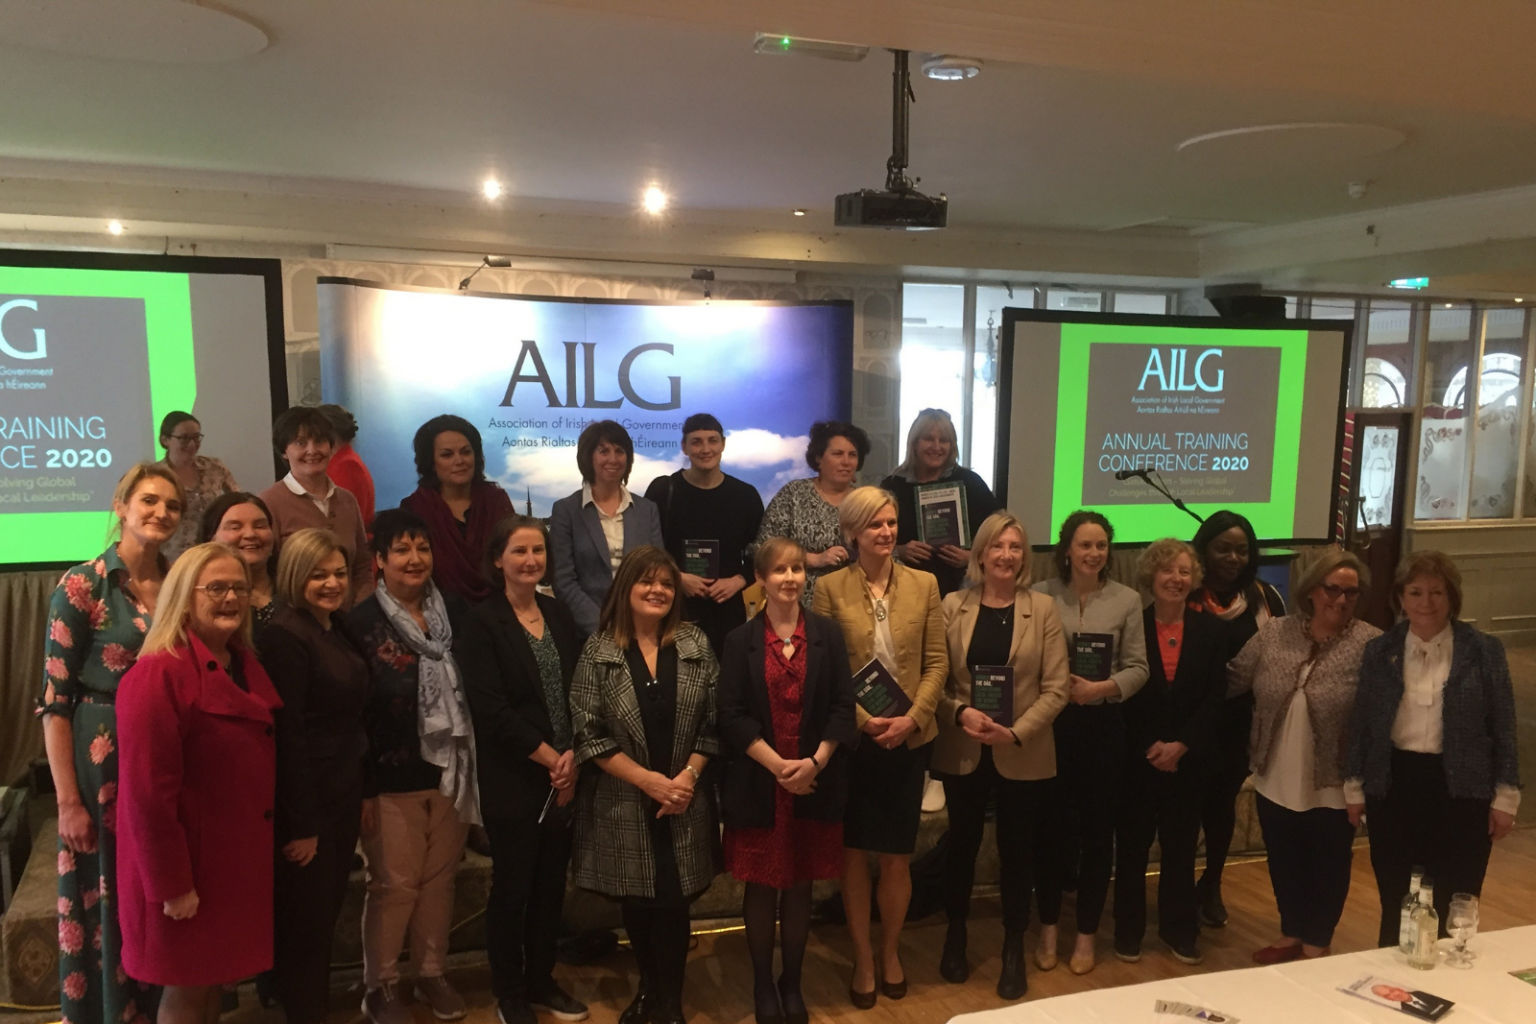 AILG Annual Conference Training 2020 Womens Conference Pic